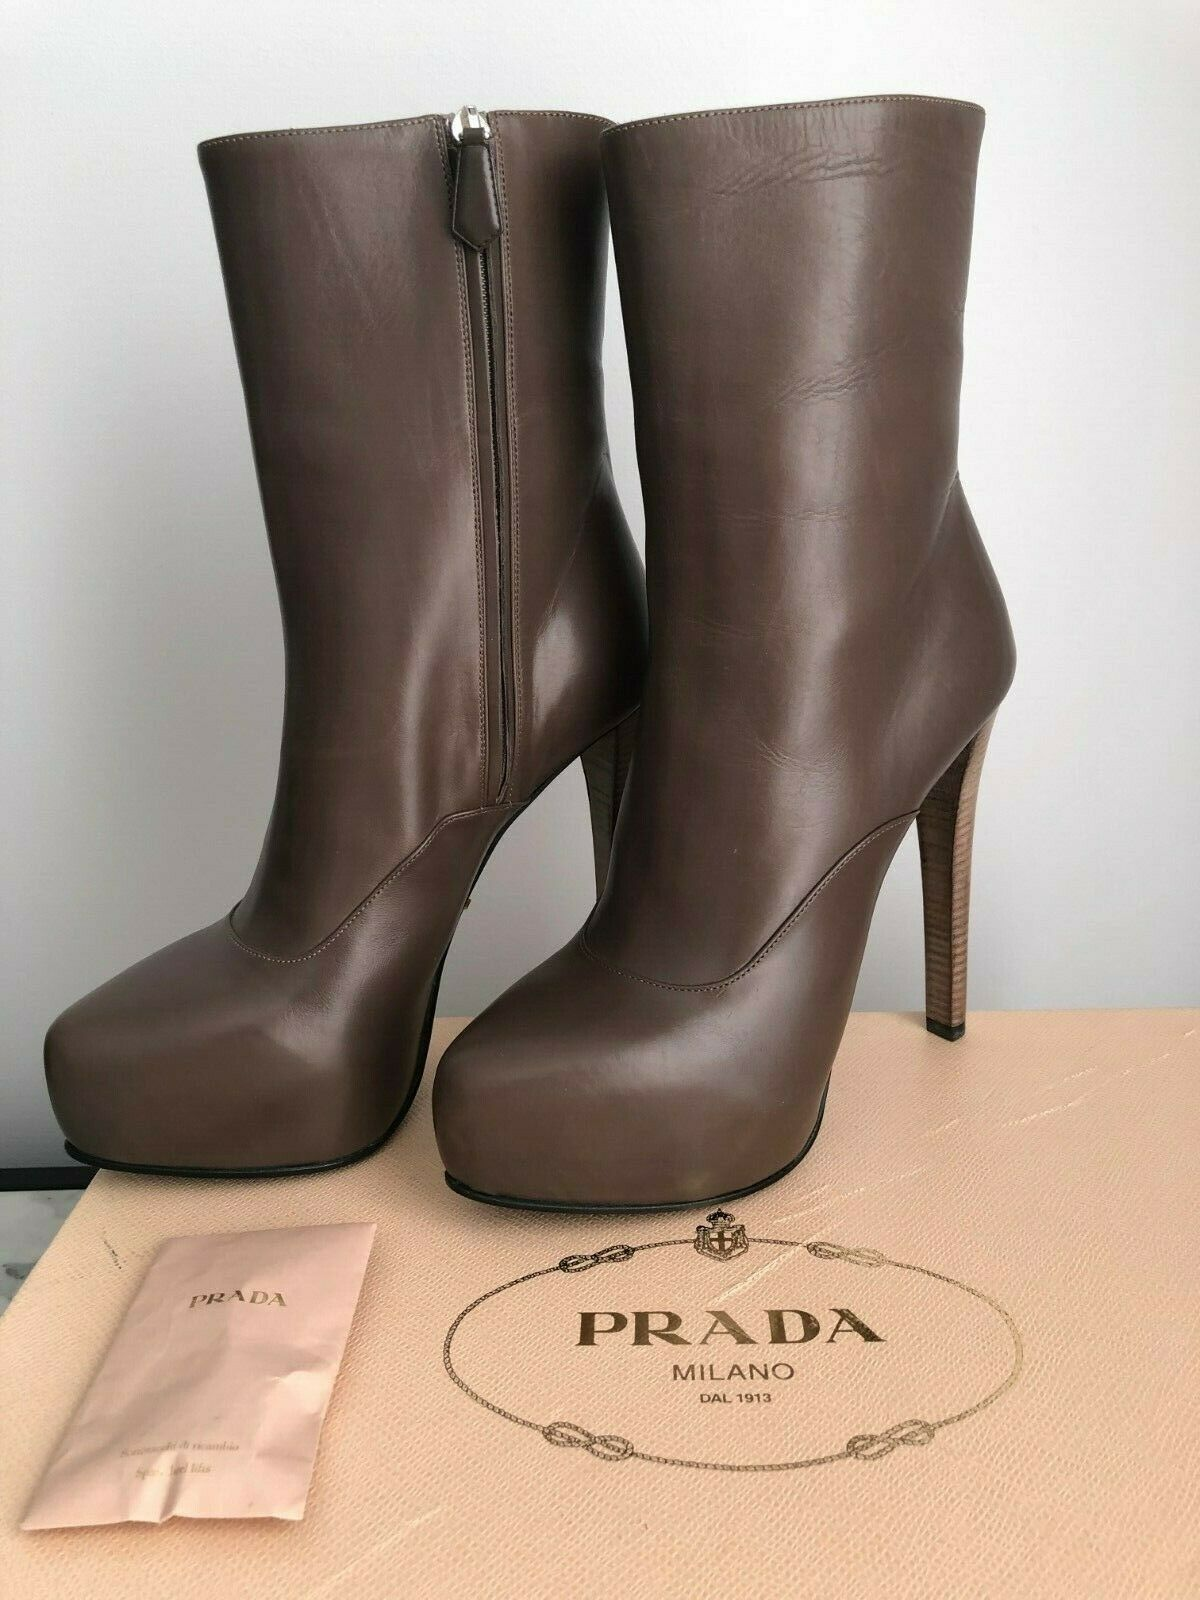 Original Prada Calf Leather Platform Wedge Boots ankle booties zipper shoe box